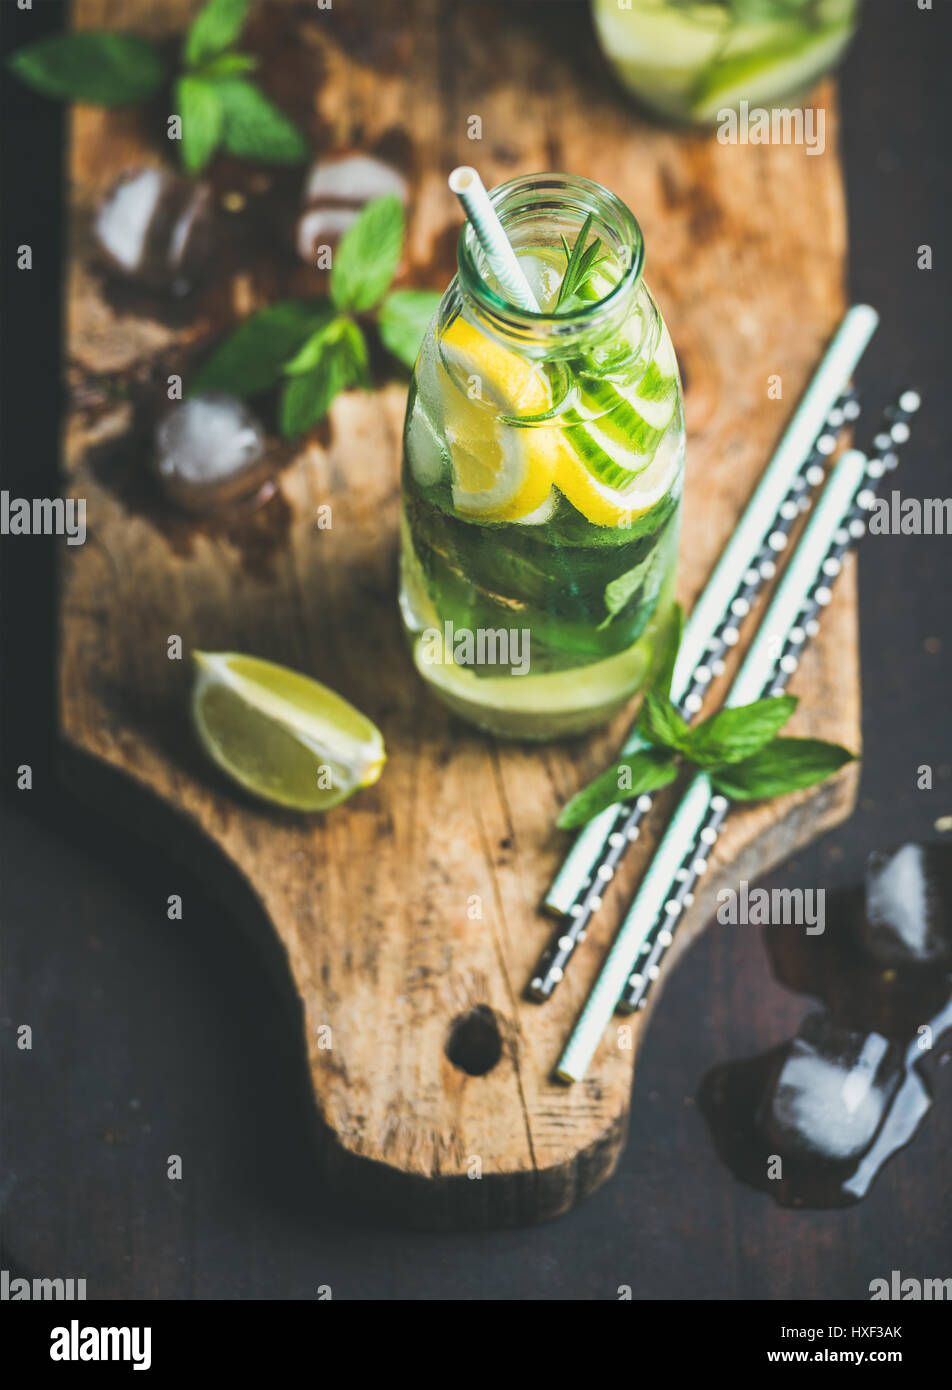 Citrus fruit and herbs infused sassi water on wooden board - Stock Image